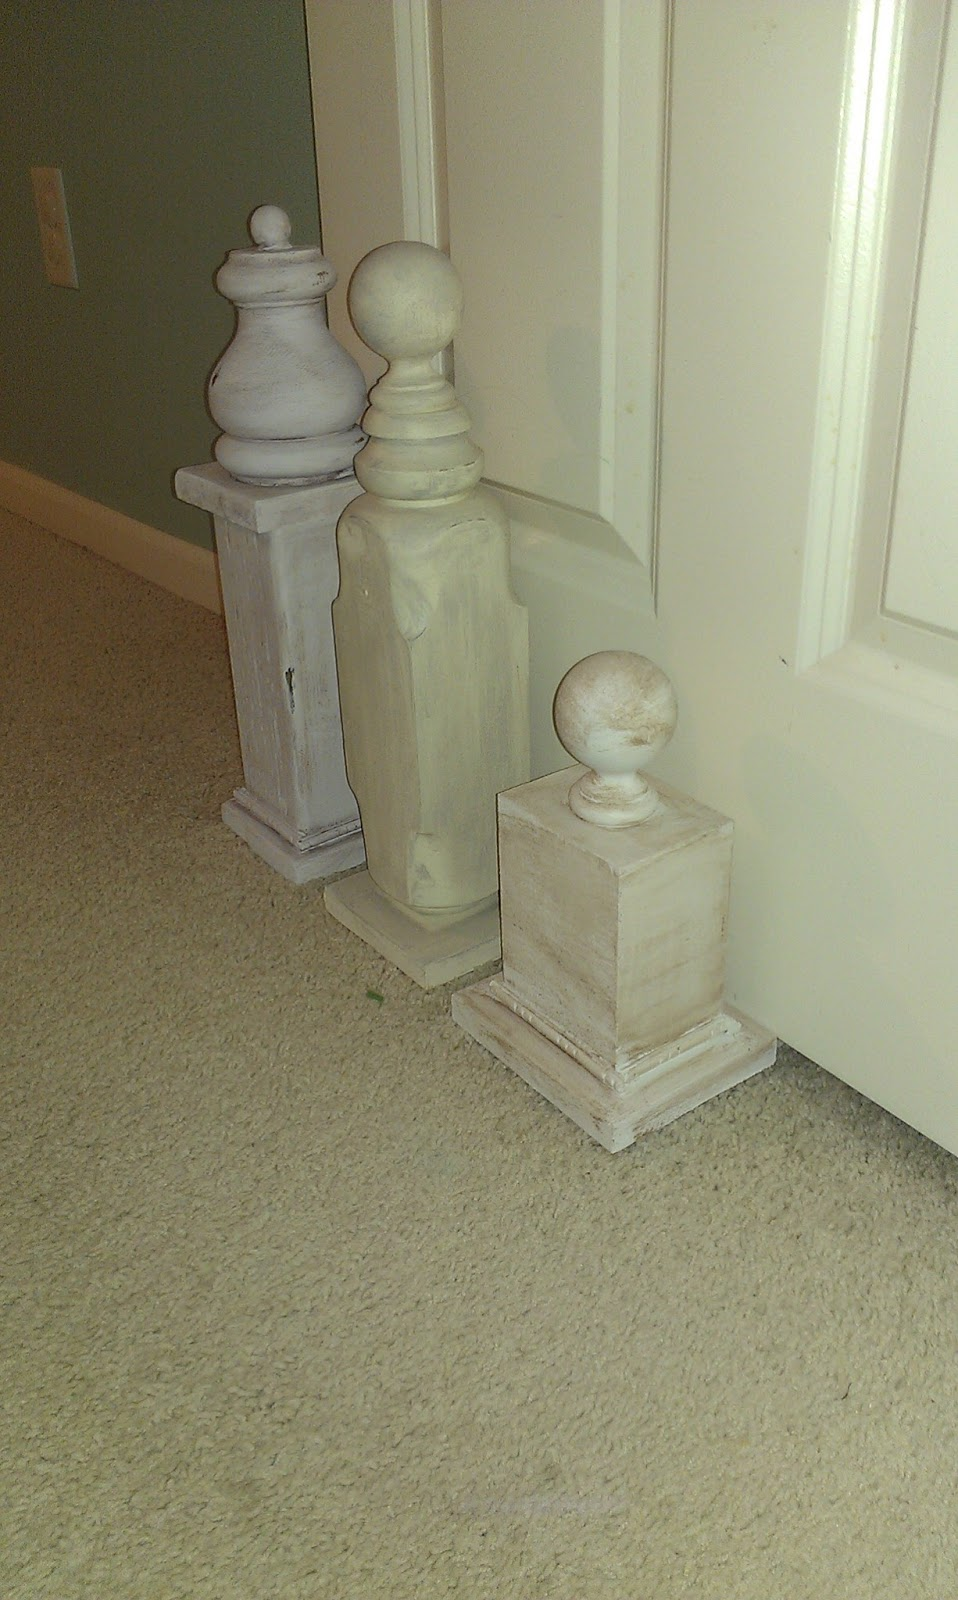 decorative door stops thrifty treasures decorative door stop how to make one 29849